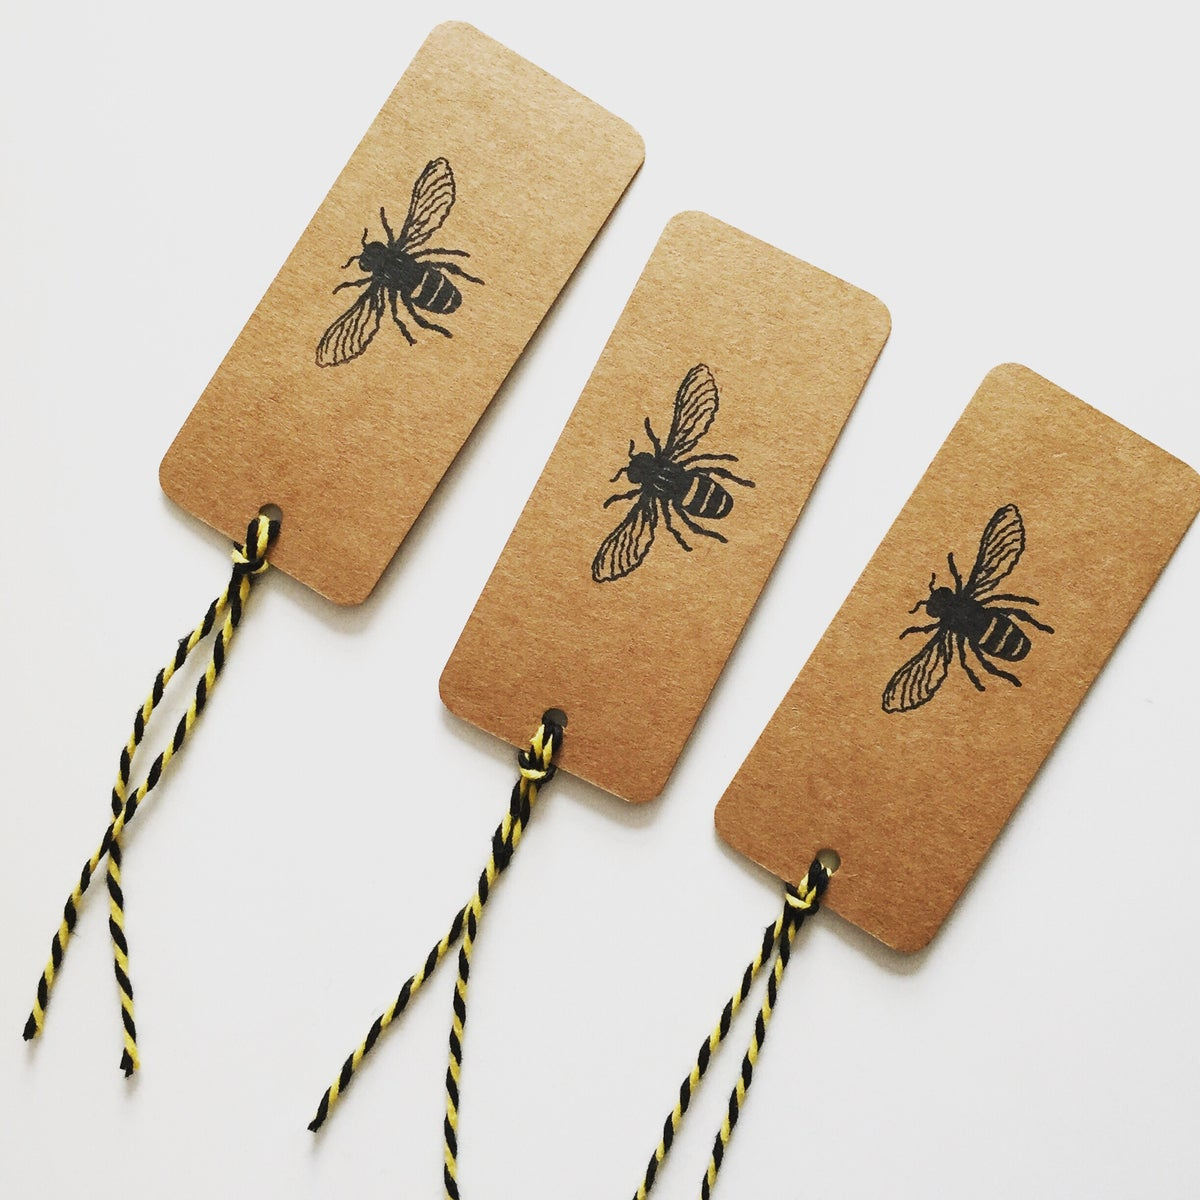 Image of Manchester Worker Bee Gift Tag - Pack of 3